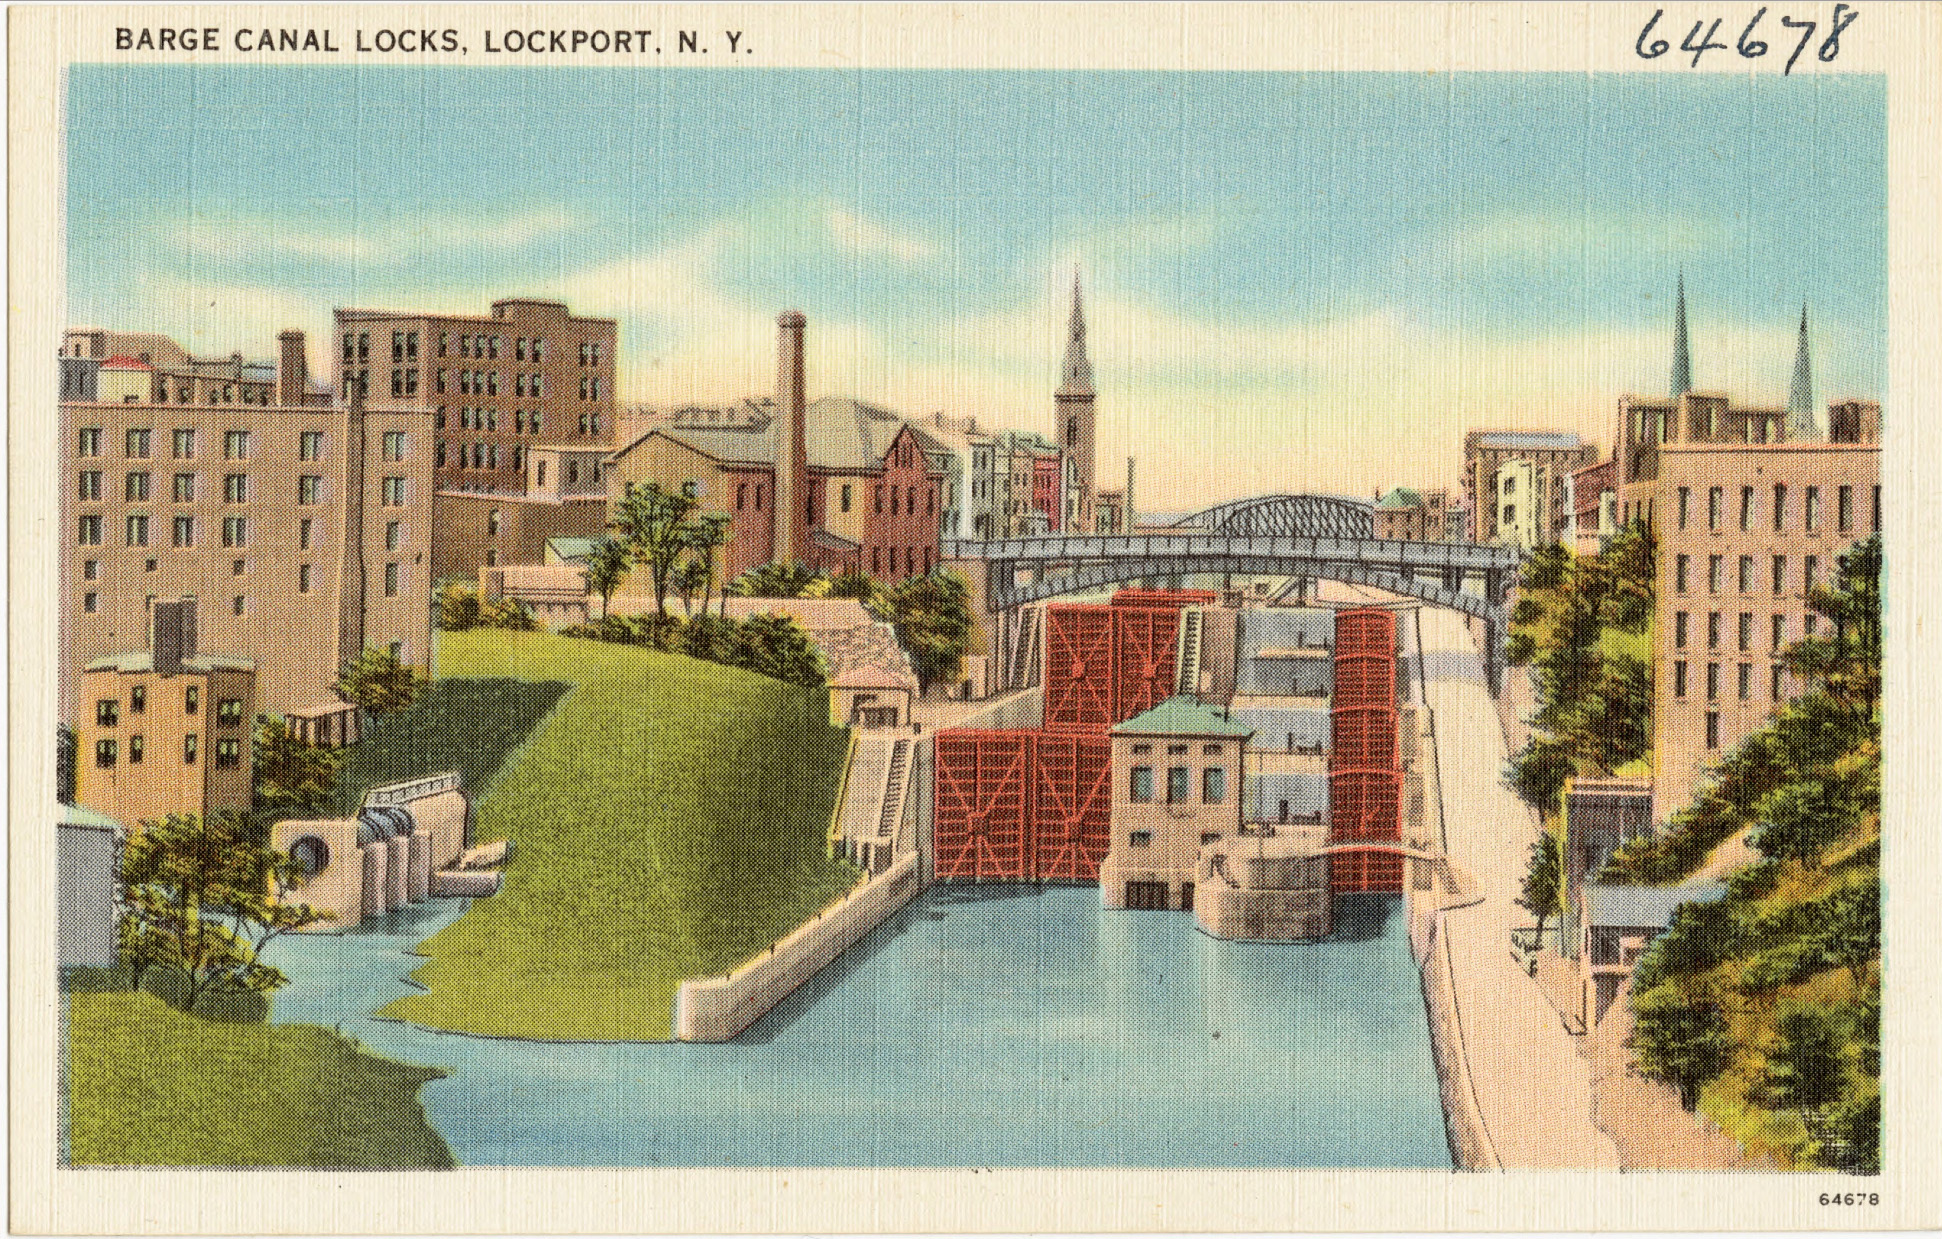 Barge Canal Locks, Lockport NY, illustrated postcard.jpg